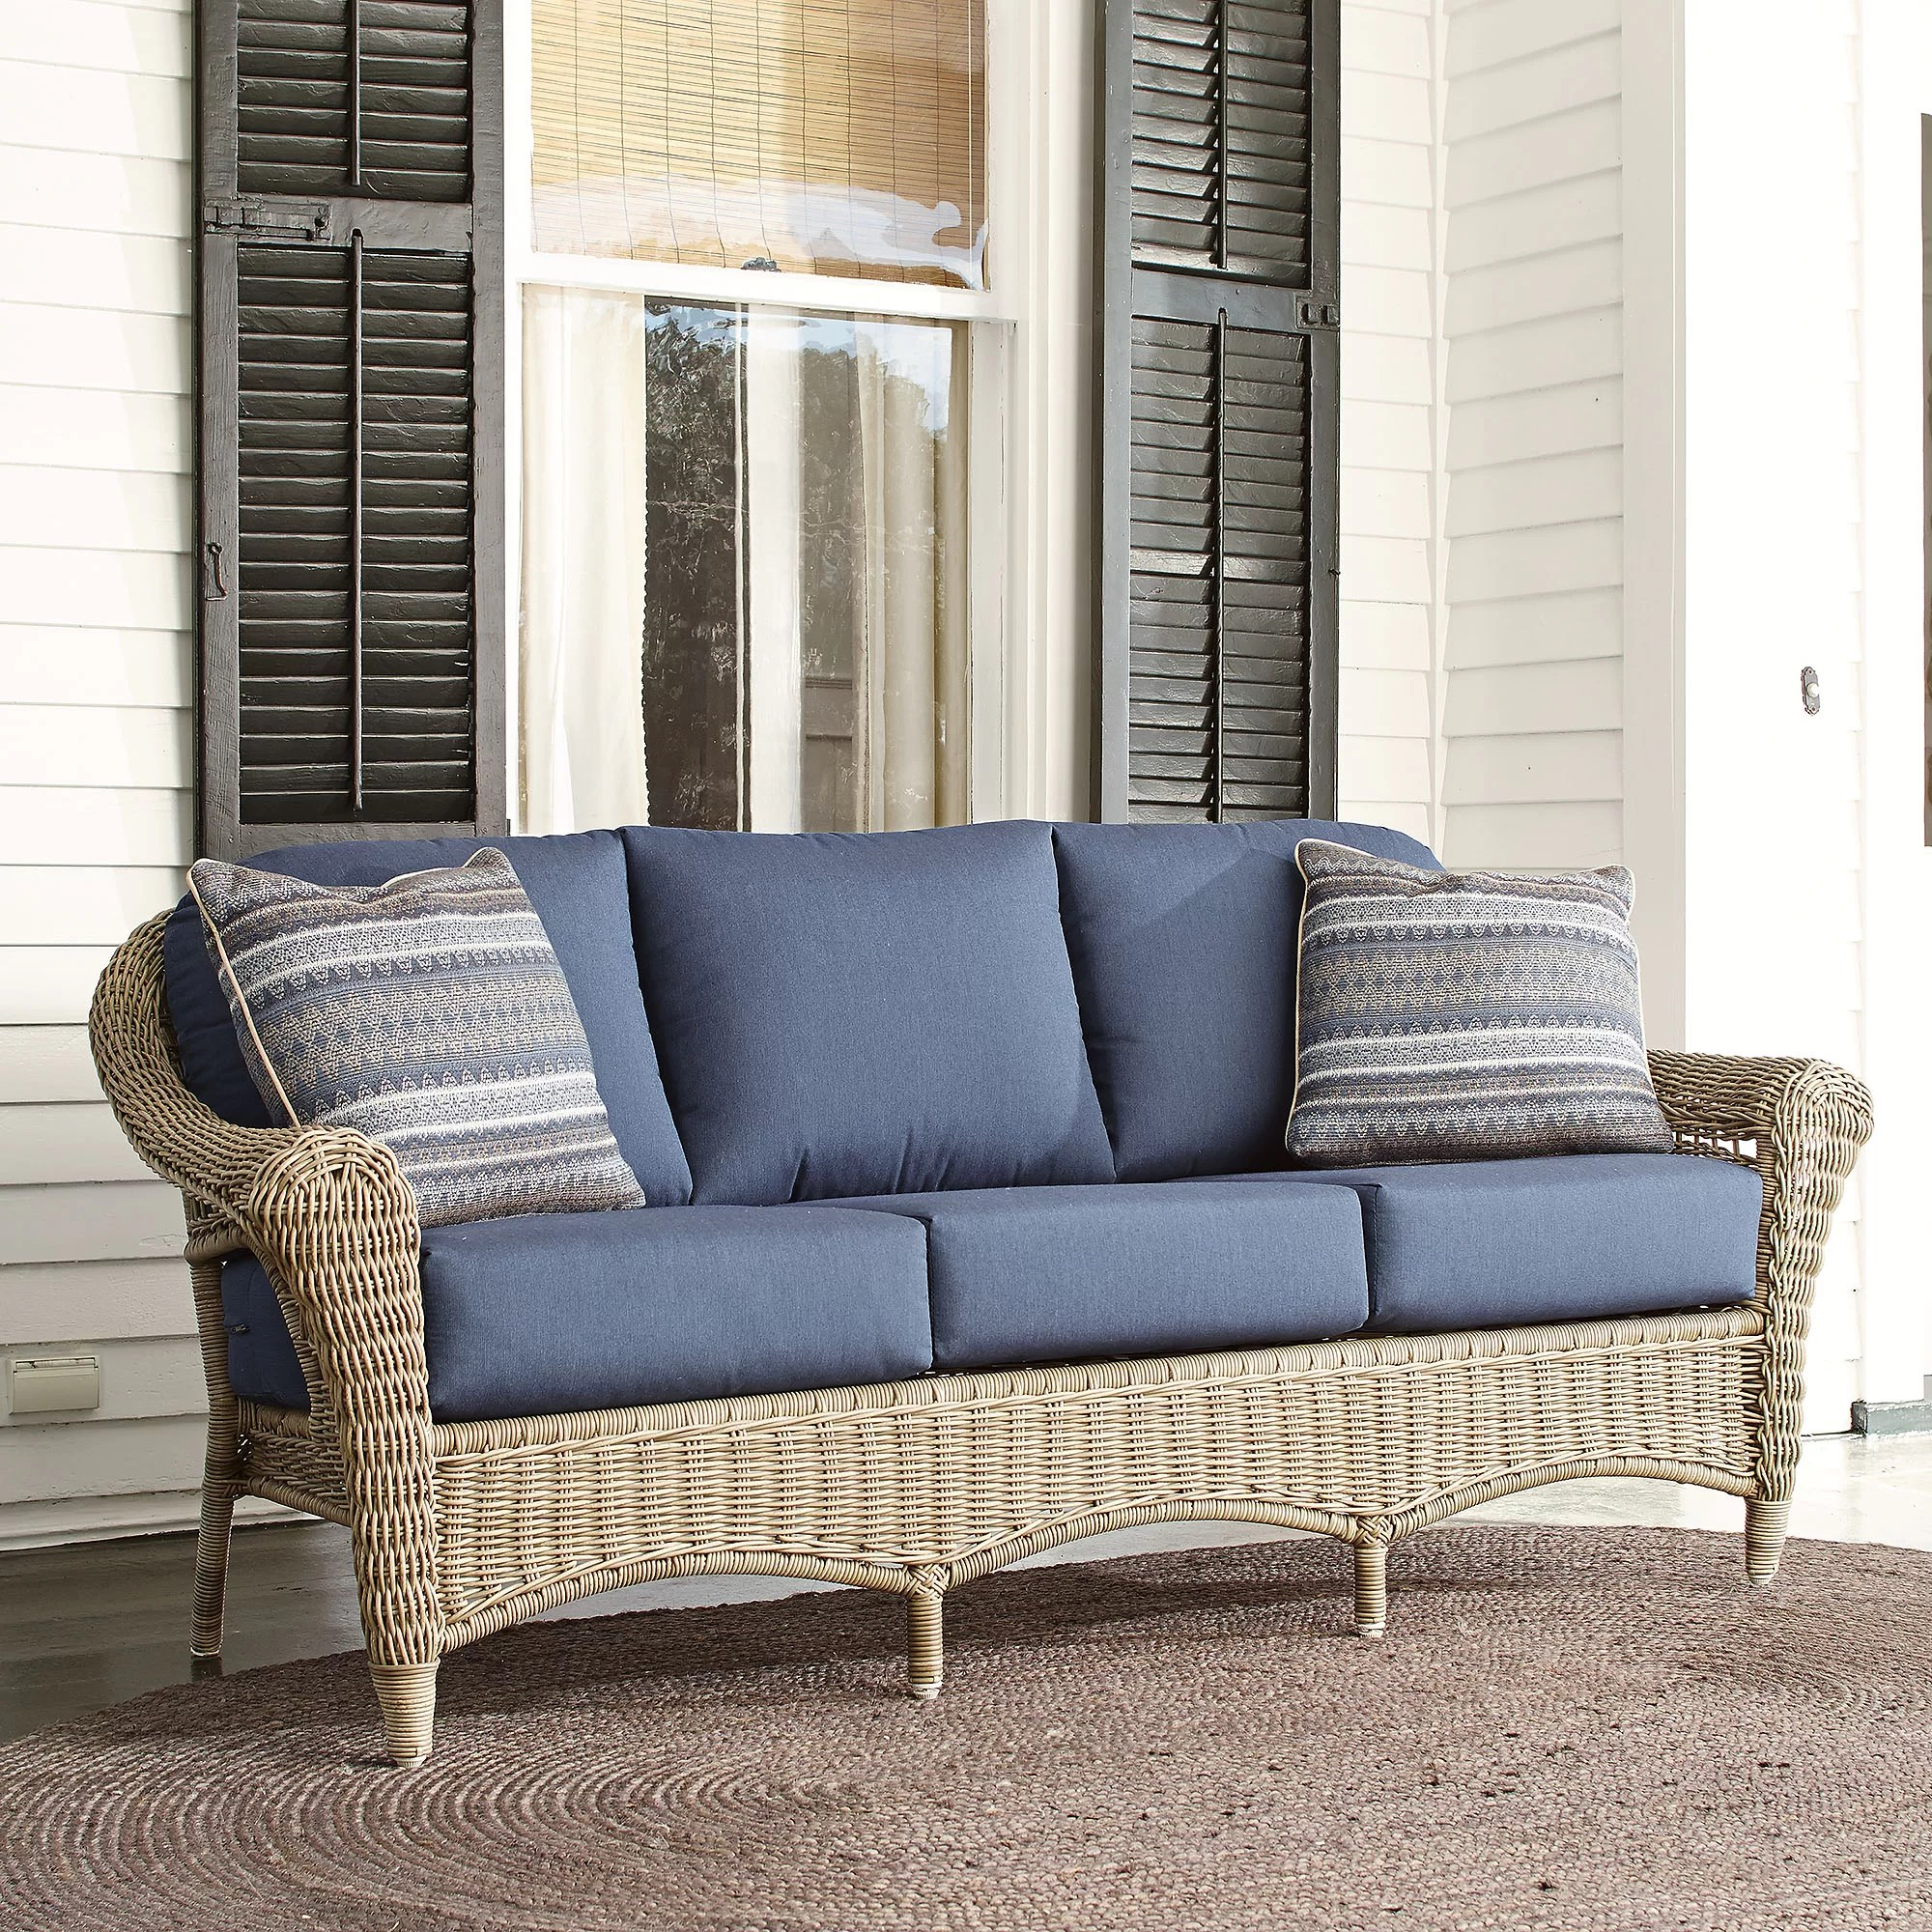 sunbrella sofa cushions small sofas for rooms australia birch lane lynwood wicker with